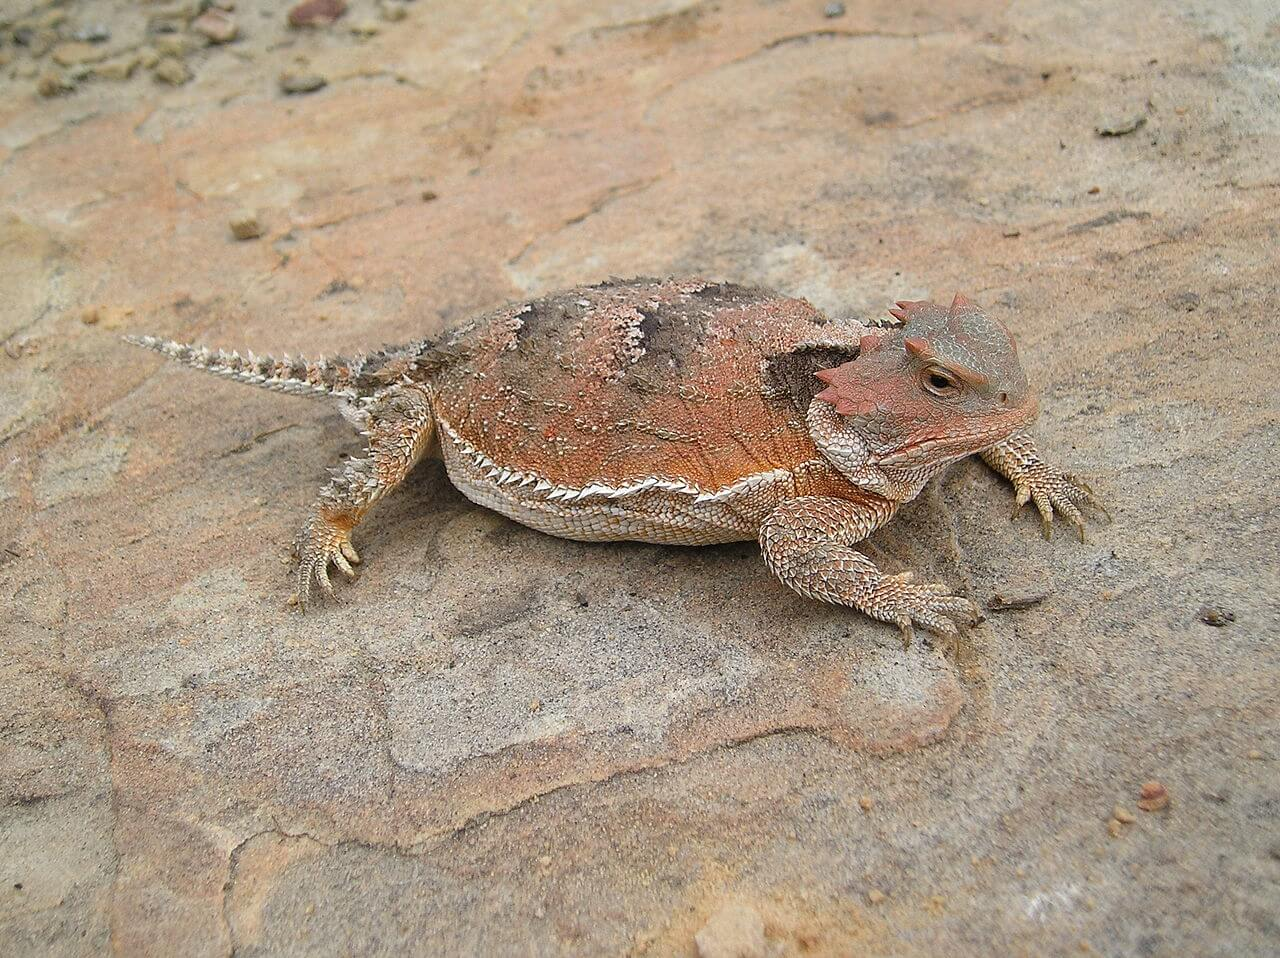 https://en.wikipedia.org/wiki/Greater_short-horned_lizard#/media/File:Pregenant_female_Greater_Short-Horned_Liazard.jpg